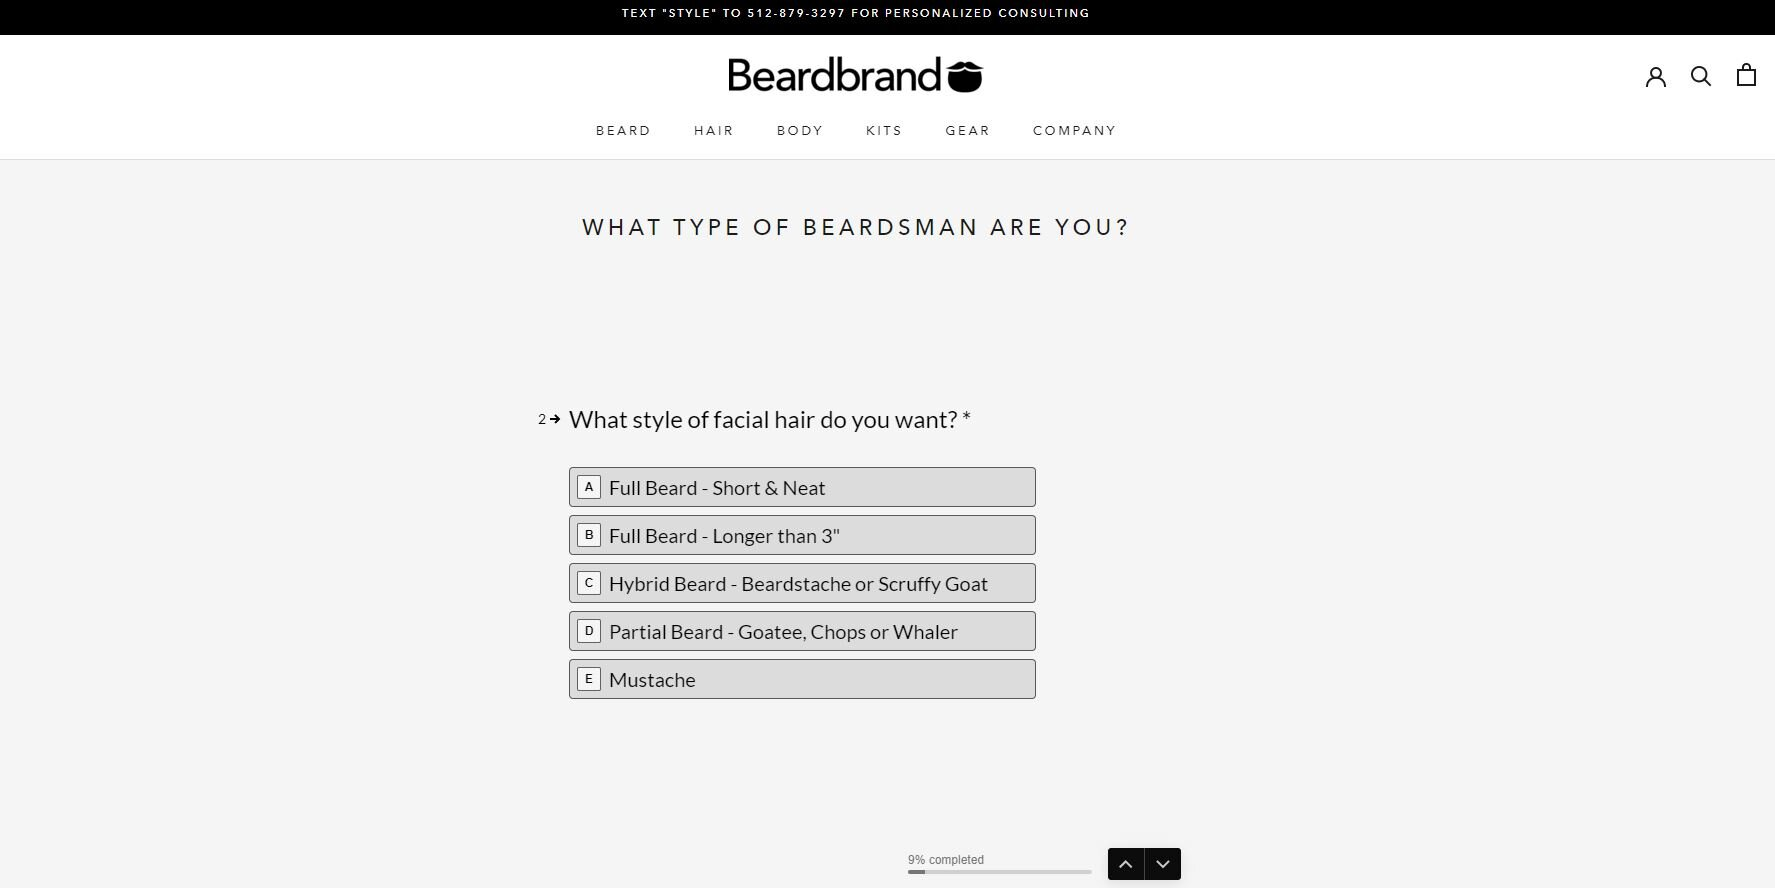 Beardbrand-Quiz-3.JPG